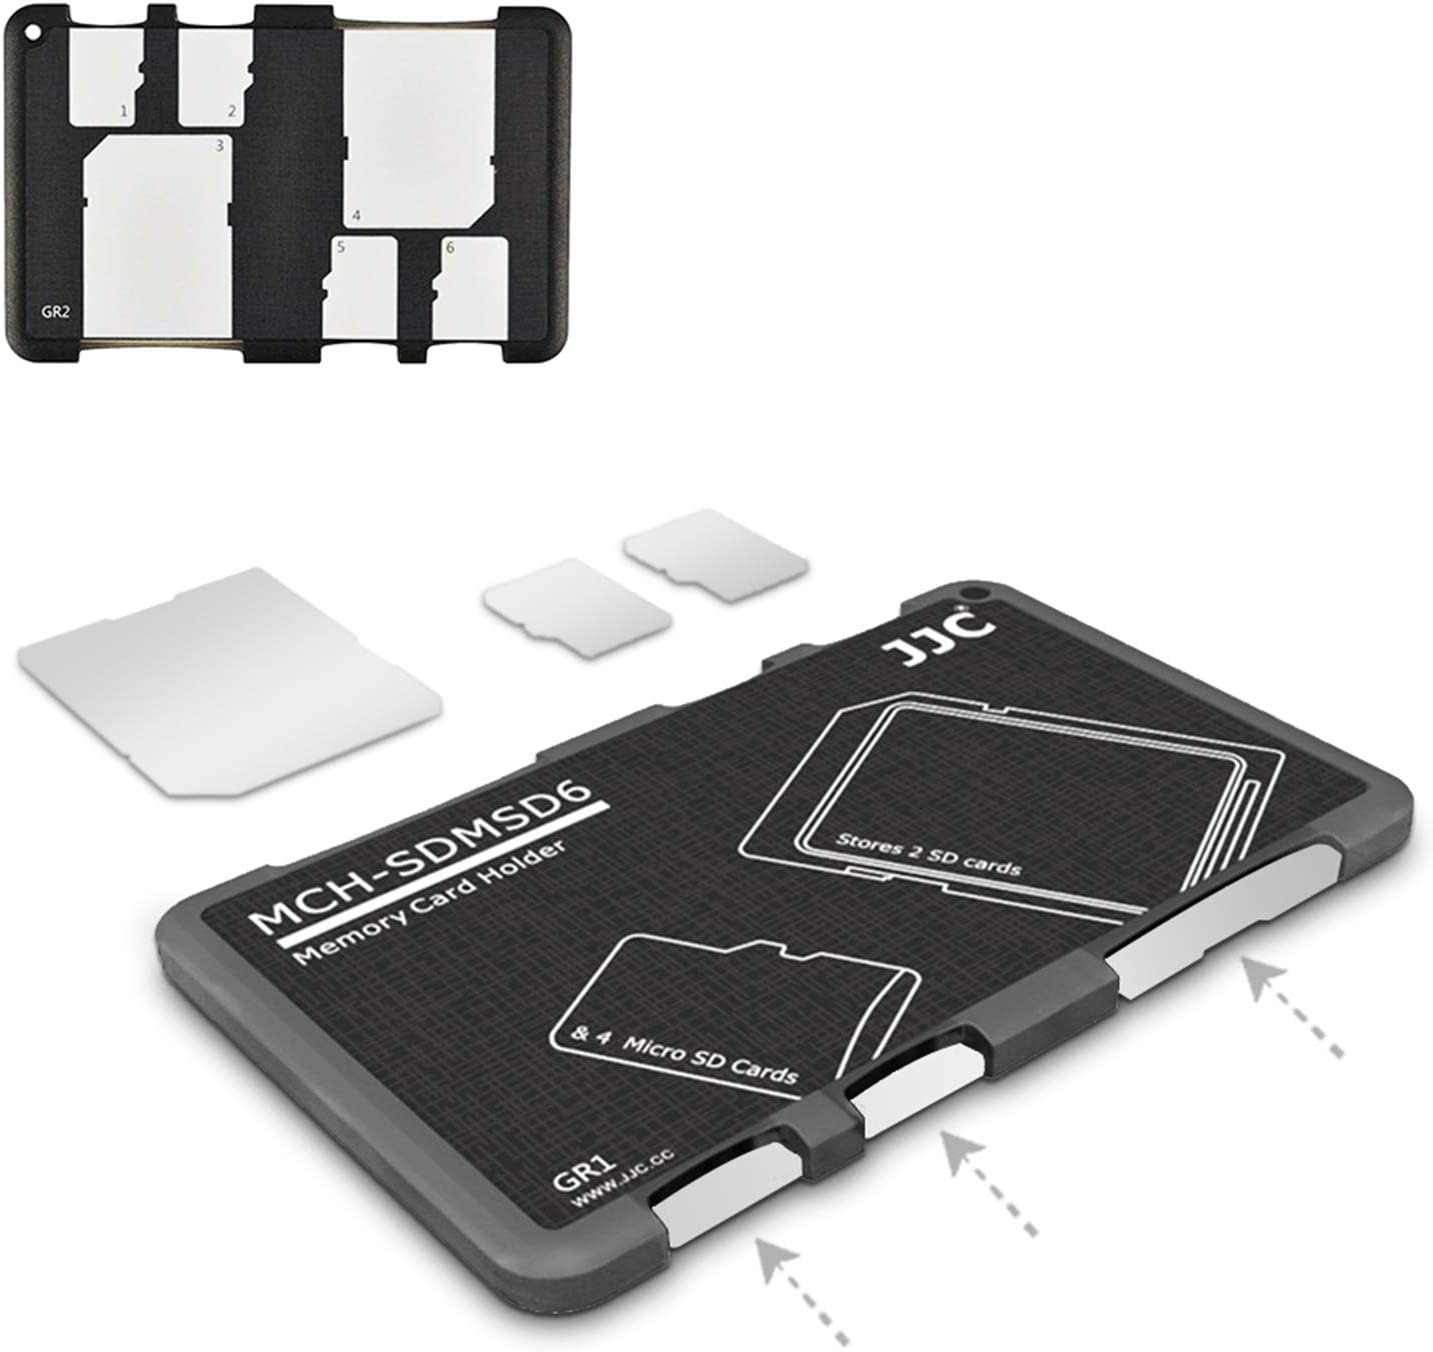 6 Slots SD Micro SD Card Case Storage Organizer, Lightweight Ultra-Thin Credit Card Size fit 2 SD SDHC SDXC Cards and 4 Micro SD TF MSD Cards